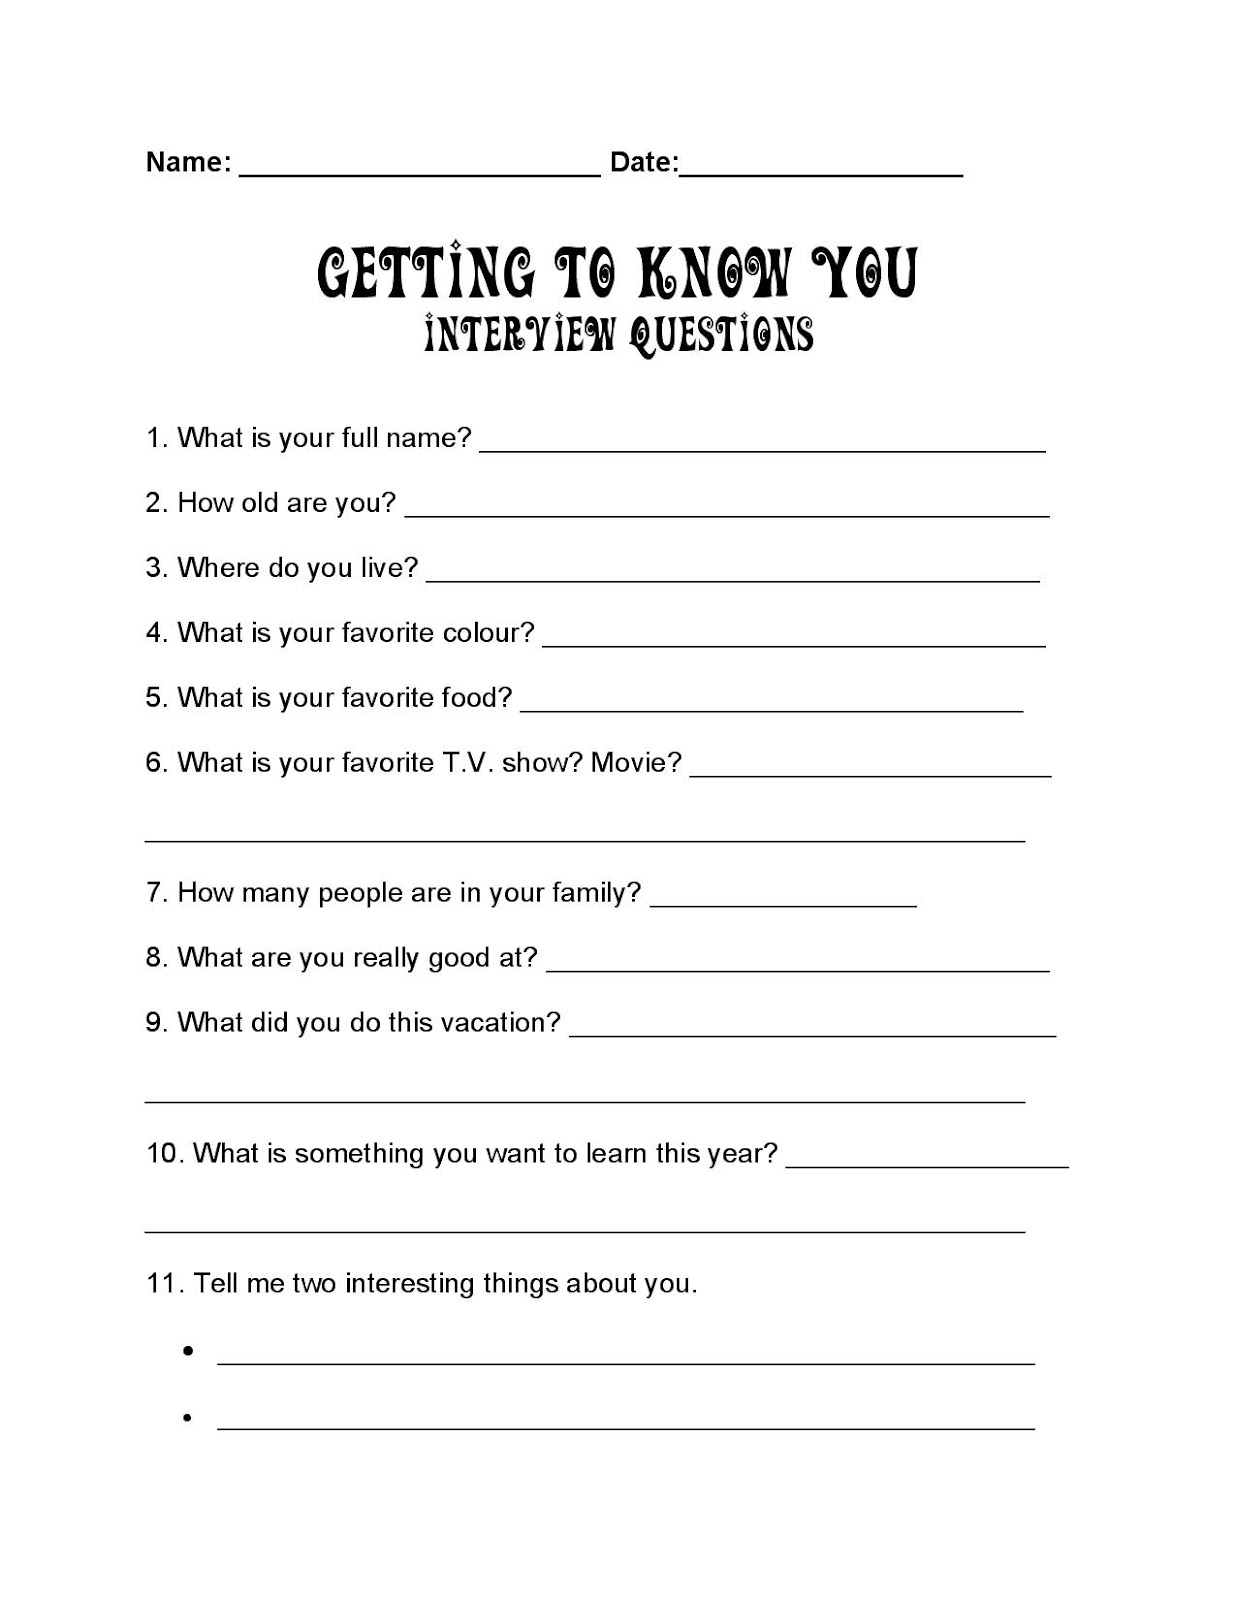 worksheet Get To Know You Worksheet printables getting to know you worksheets happywheelsfreak 4 best images of printable get questions worksheet